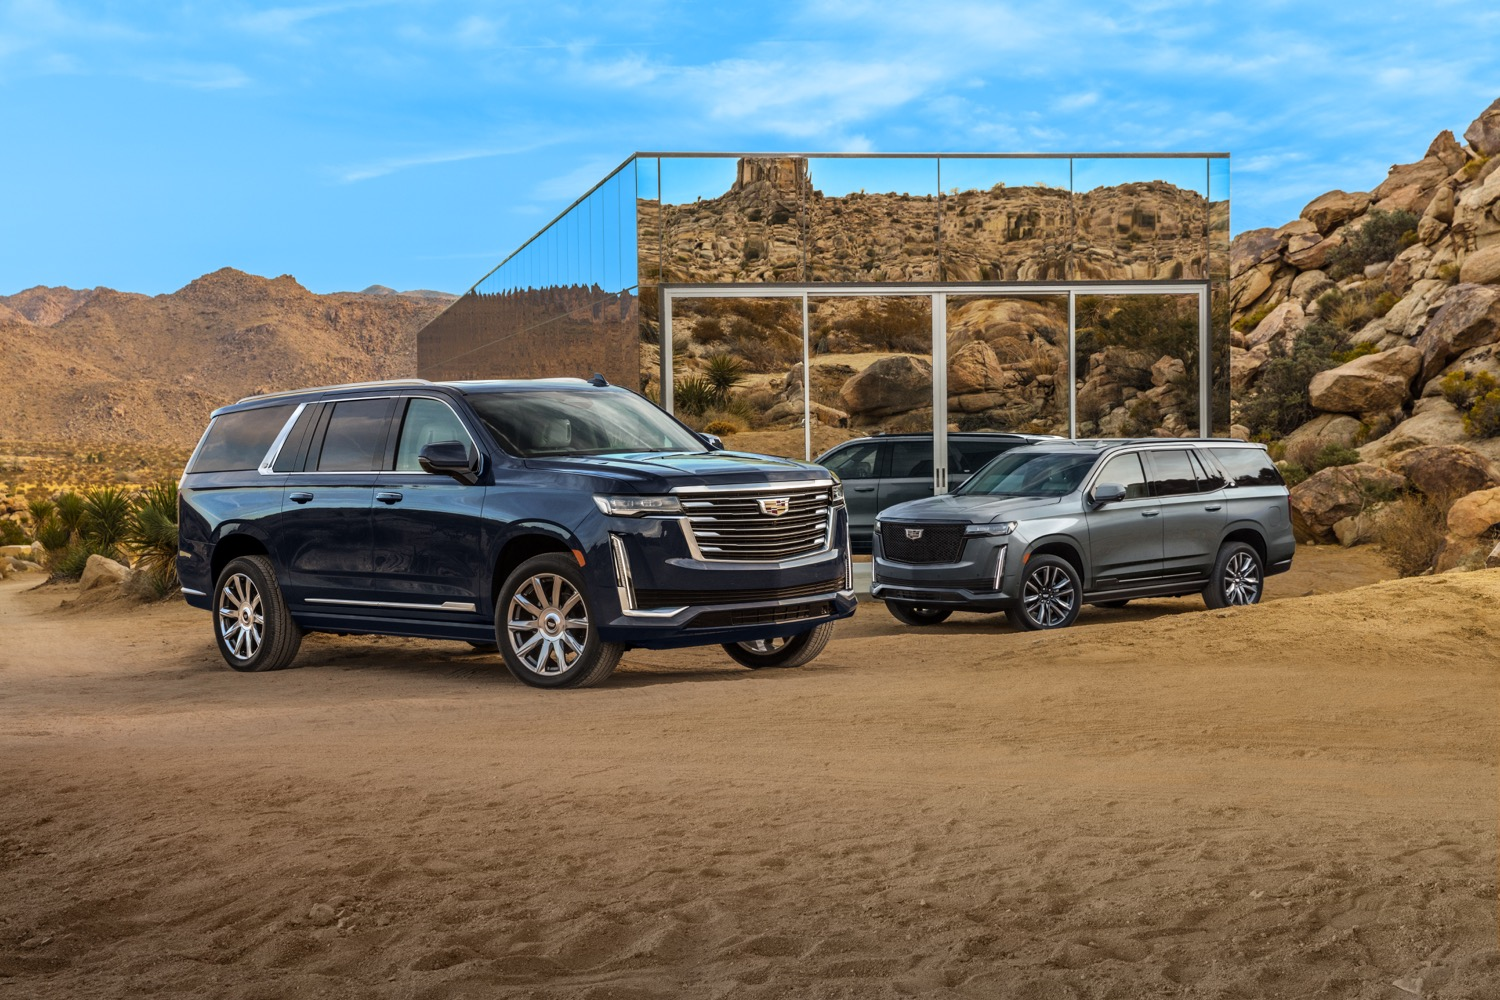 Here S How Much Super Cruise Will Cost In The 2021 Cadillac Escalade